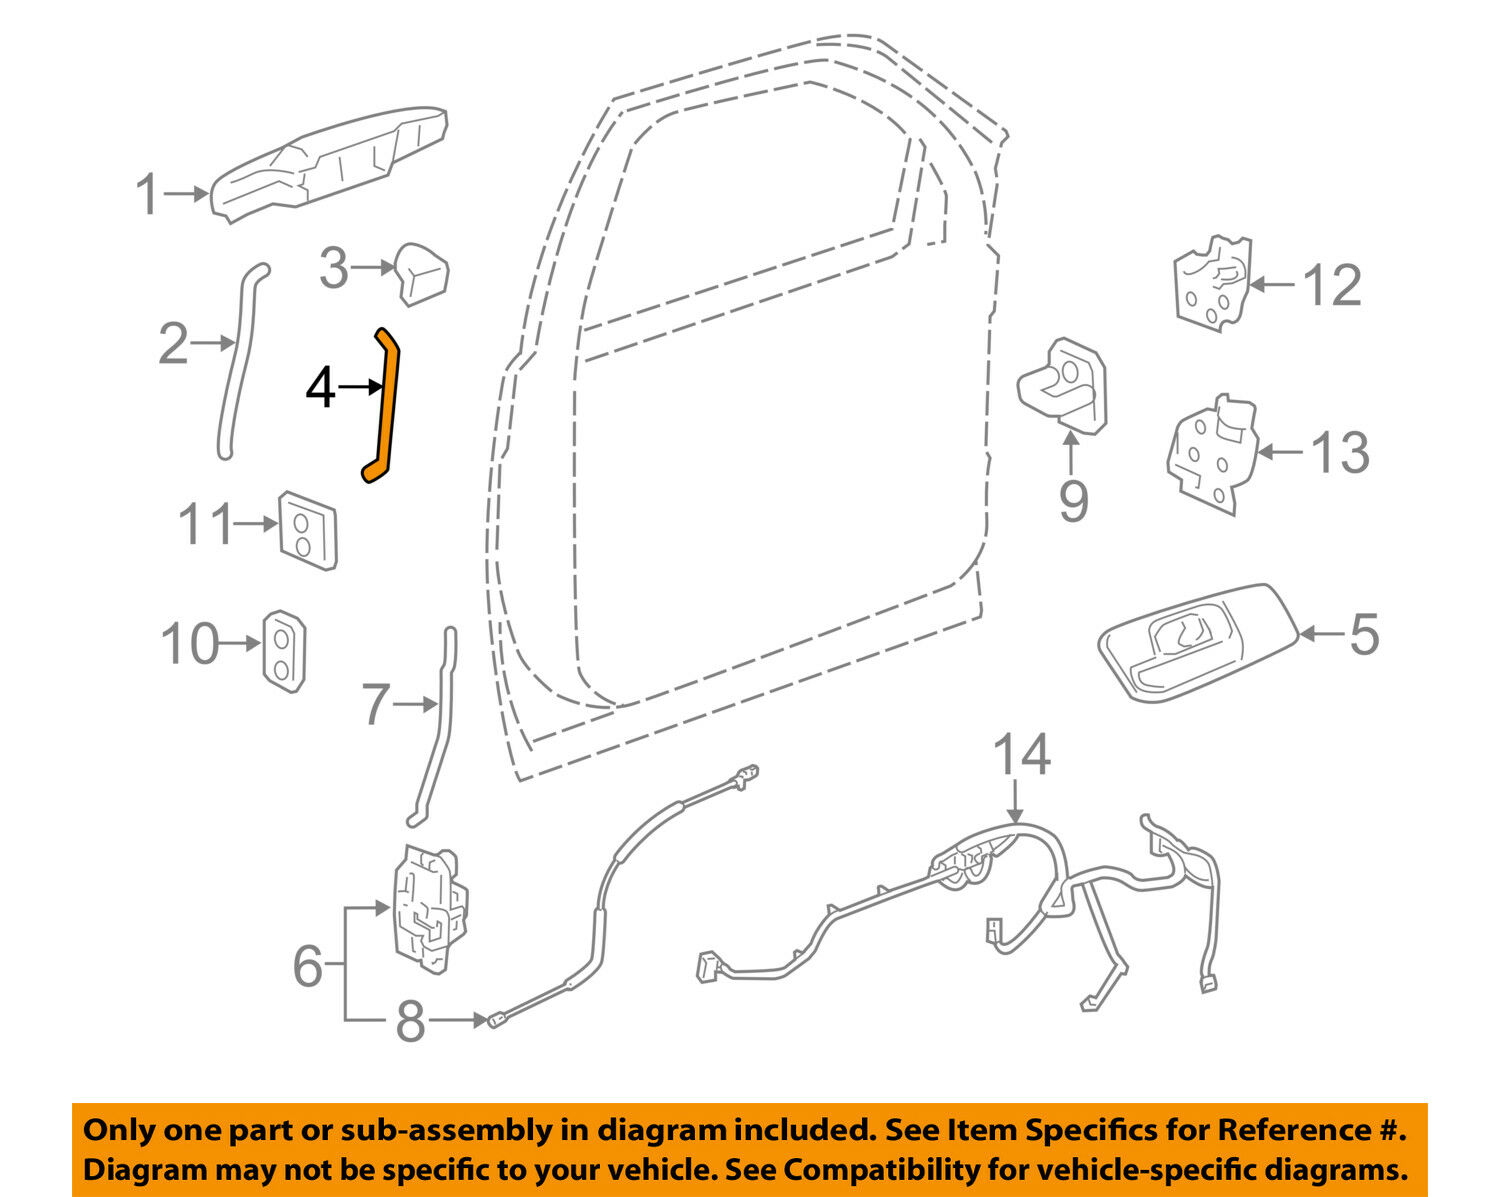 Gm Car Parts Diagram Electrical Wiring Auto Images Gallery